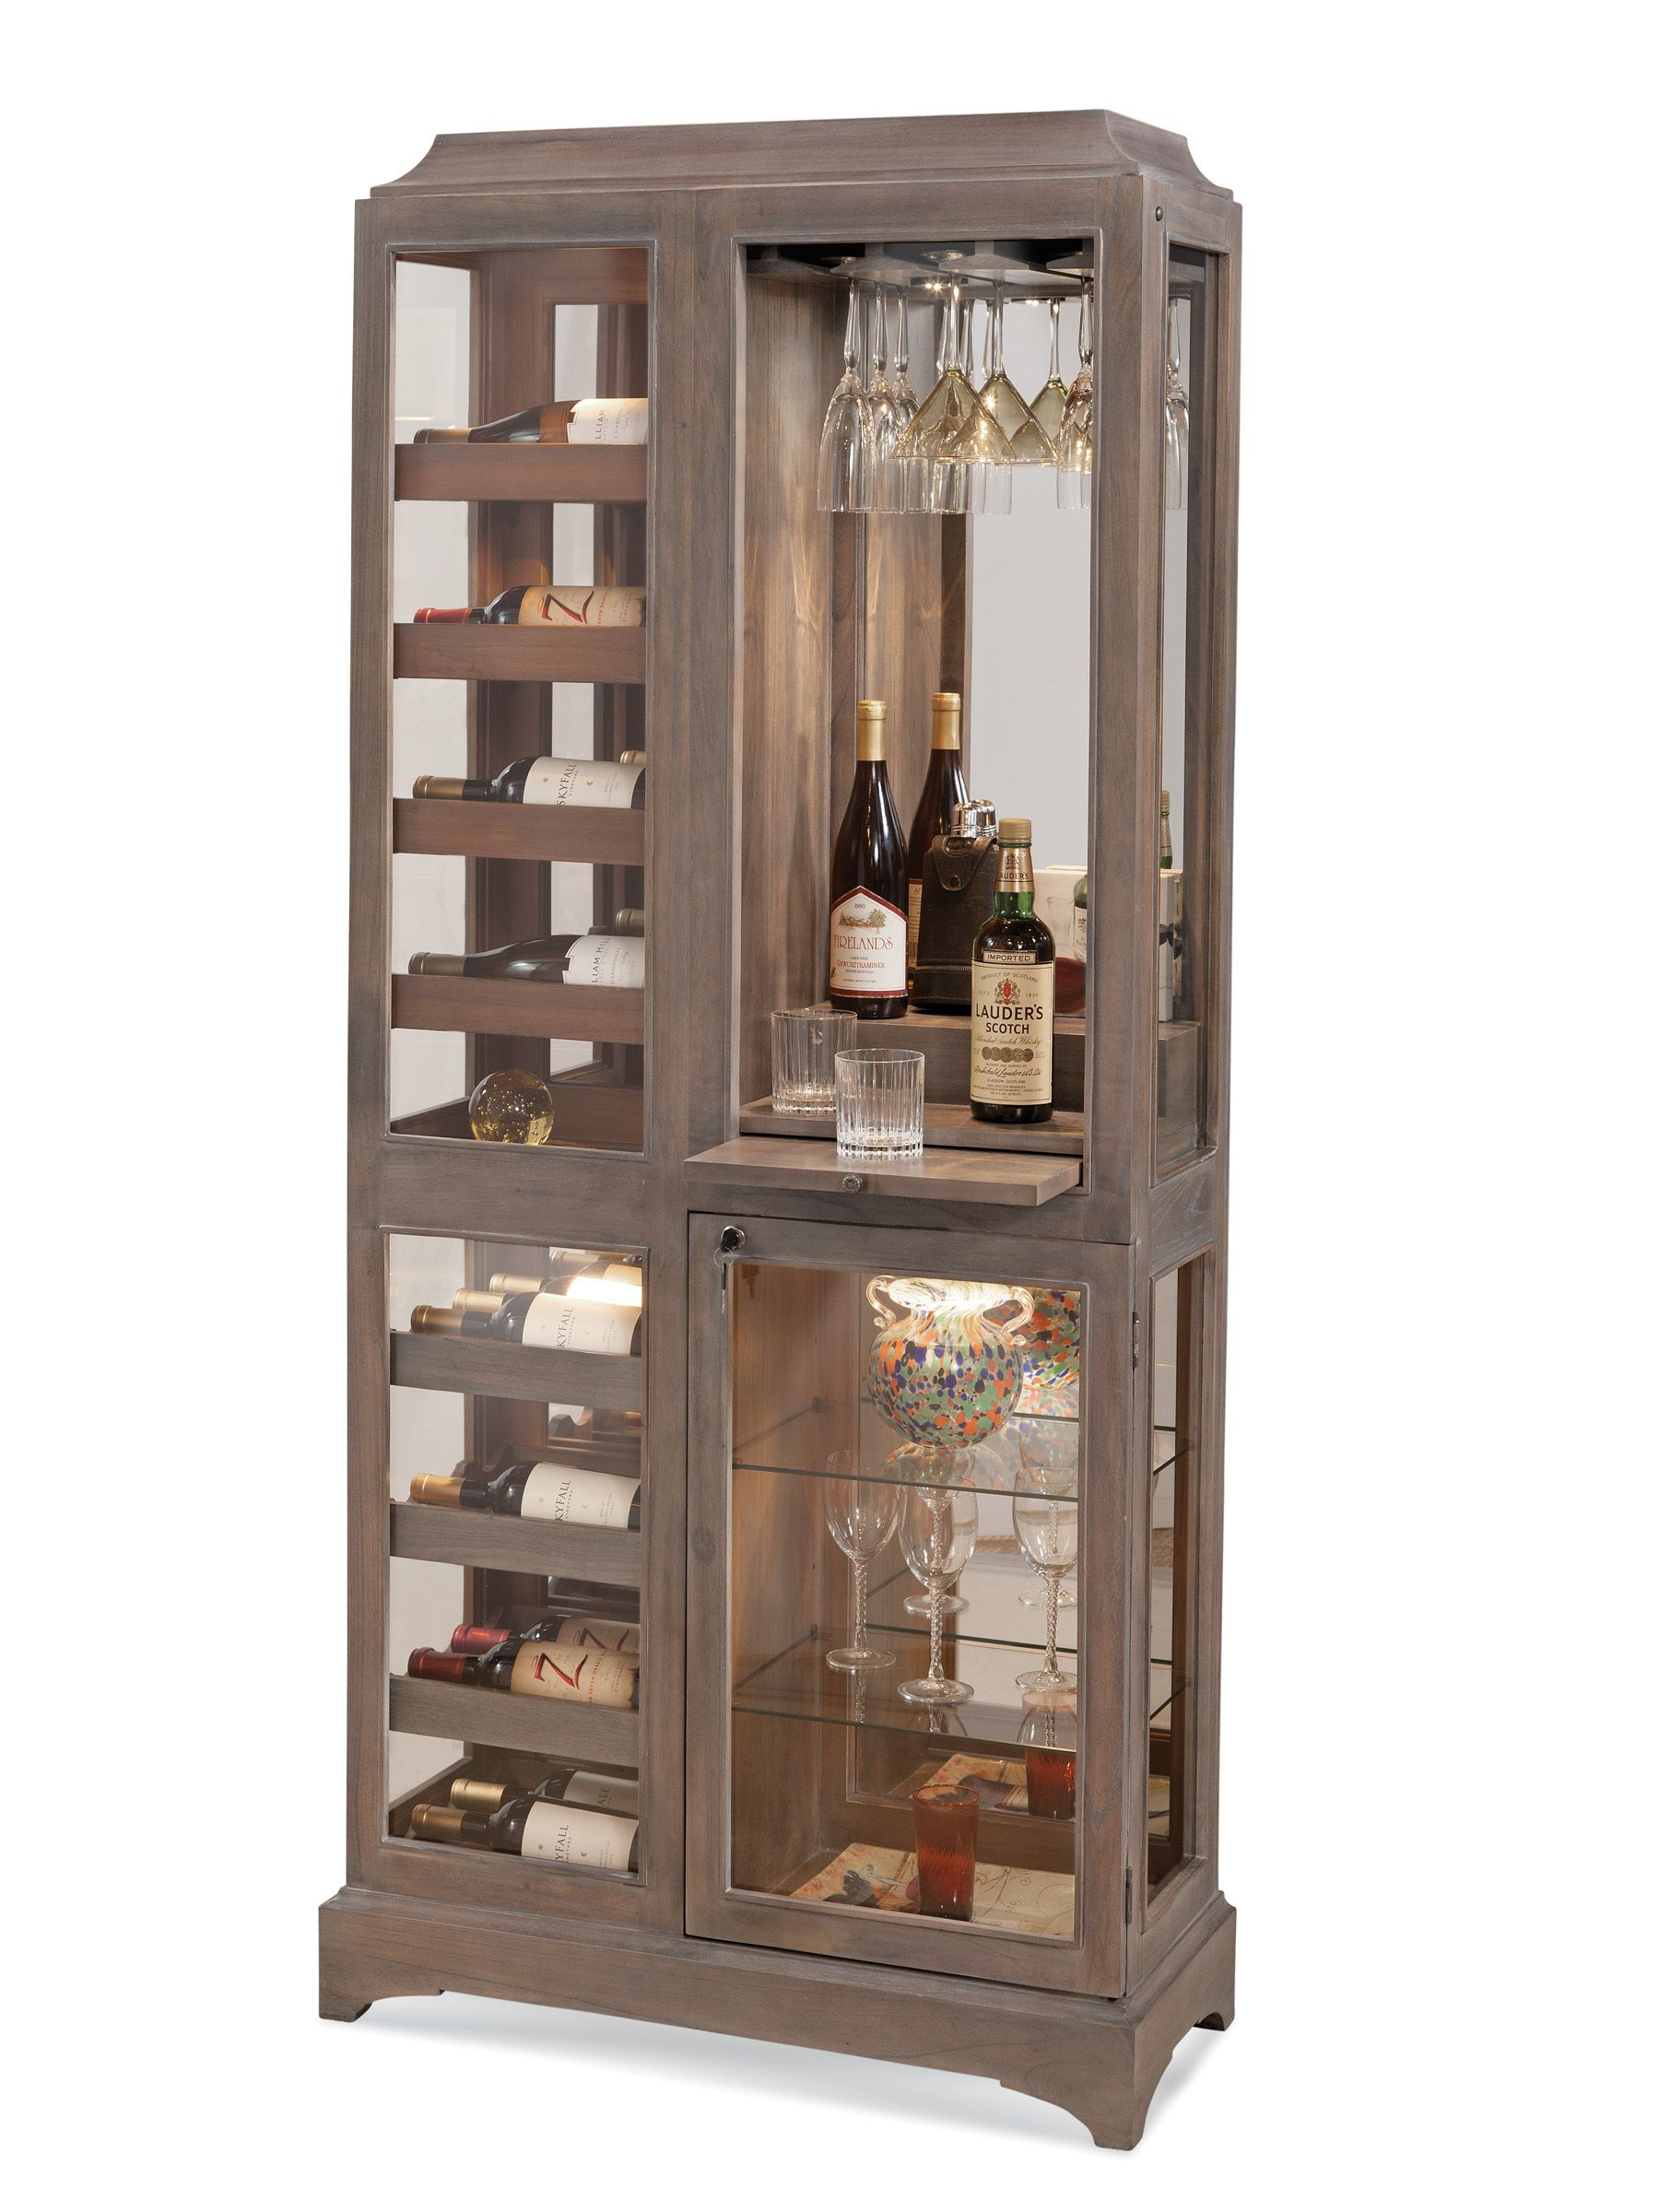 Latitude Ii Beverage Cabinet In Rustic Oak By Philip Reinisch Home Gallery Stores Bars For Home Cabinet Bar Furniture